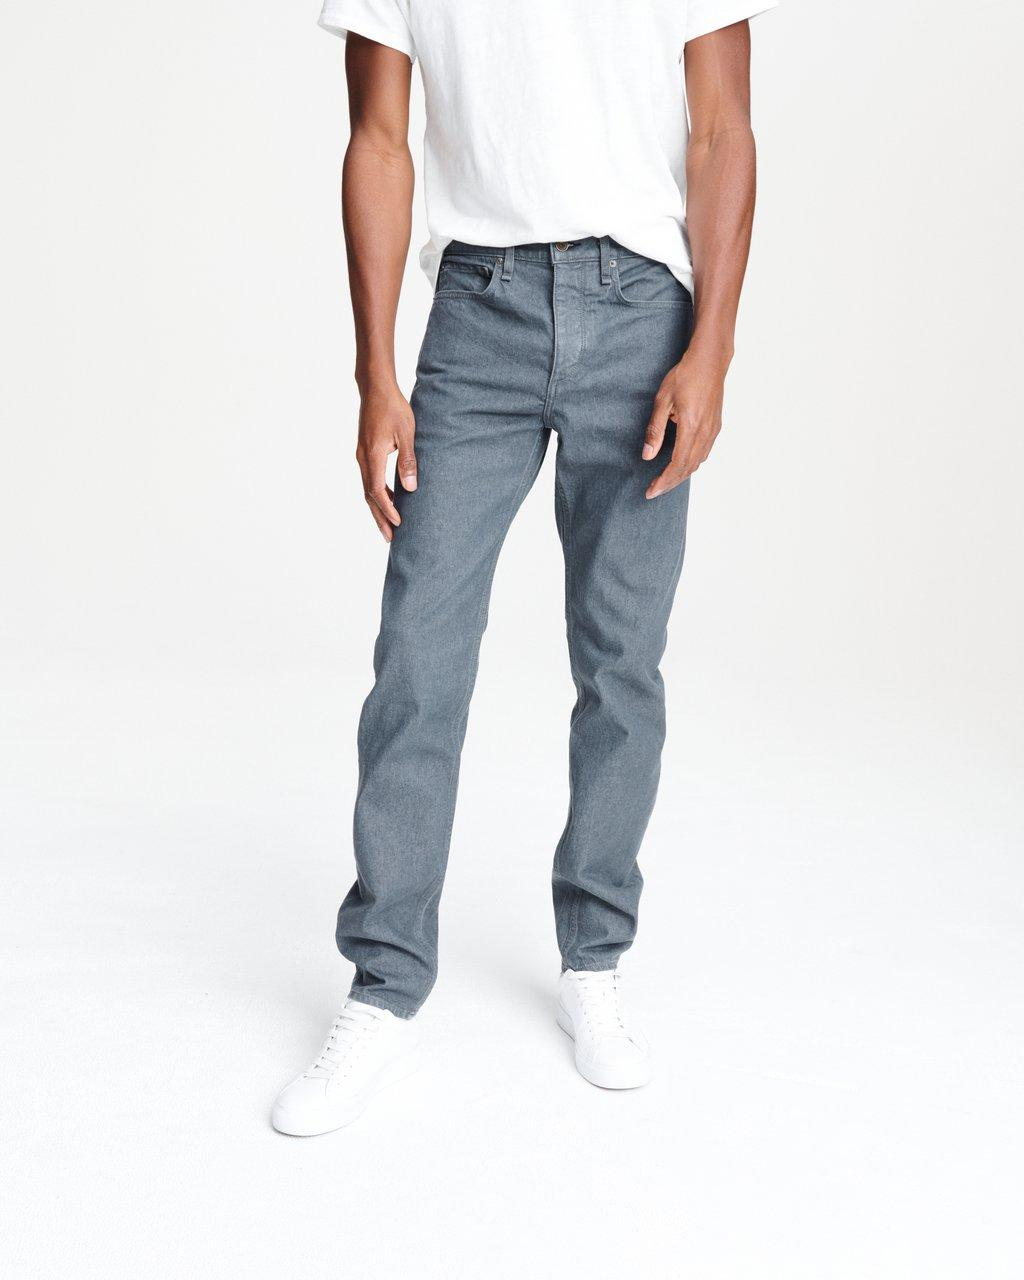 FIT 2 IN NAVY BLUE - 30 INCH INSEAM AVAILABLE